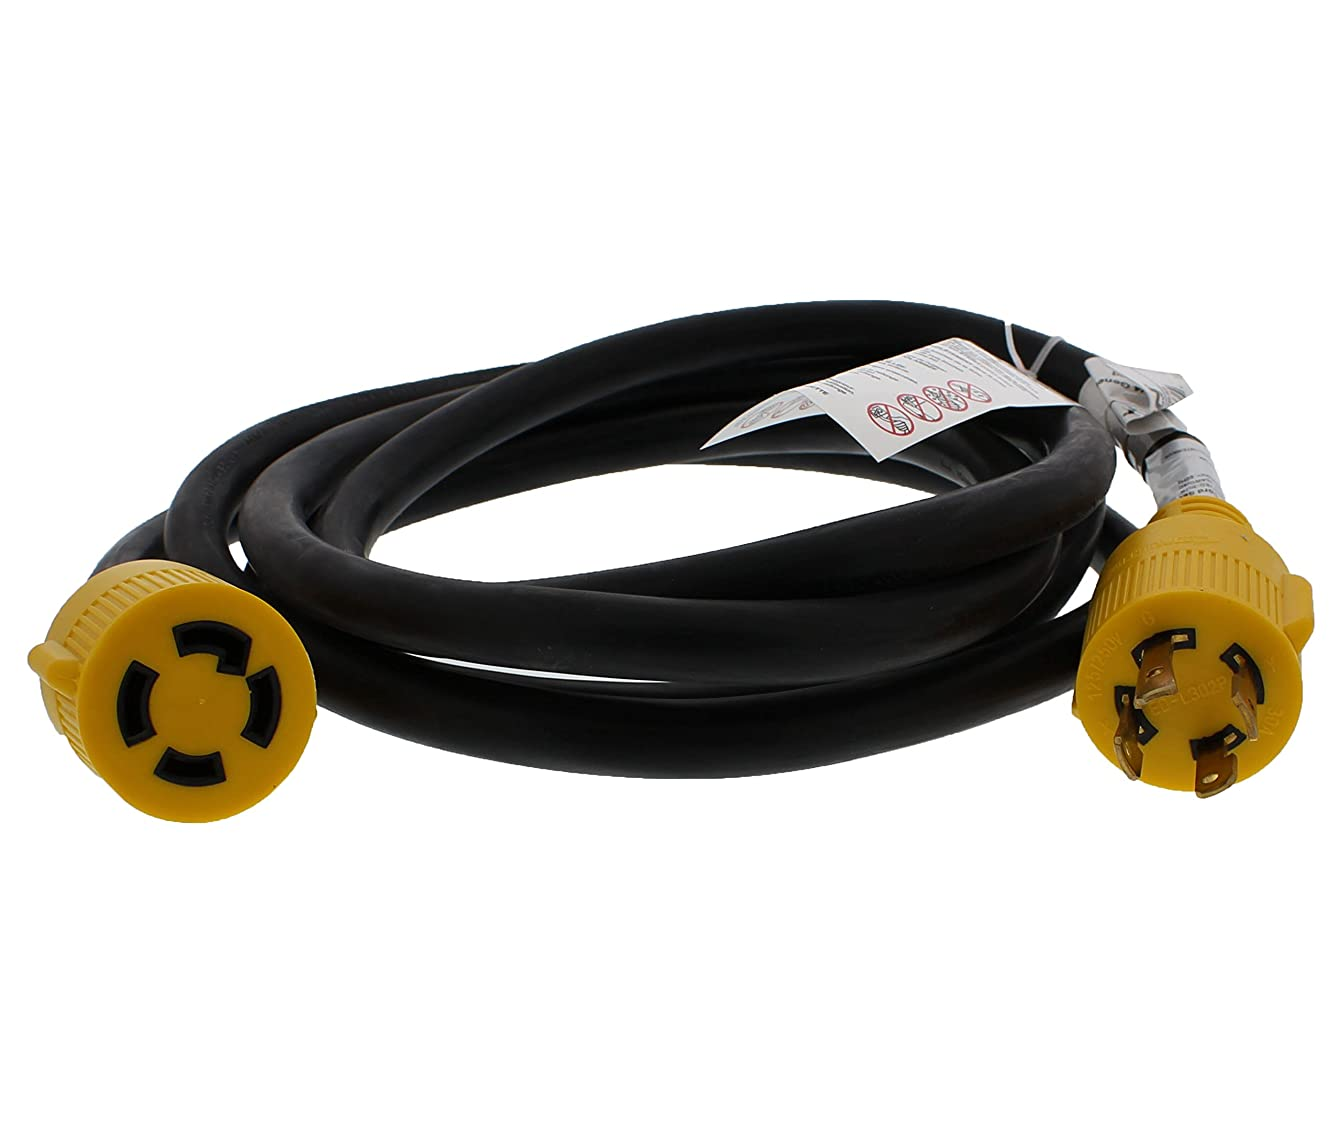 ABN 30 AMP RV Power Cord for Generator & Transfer Switch – 10' Foot Long Reach – 30A Power Cable Camper Power Extension